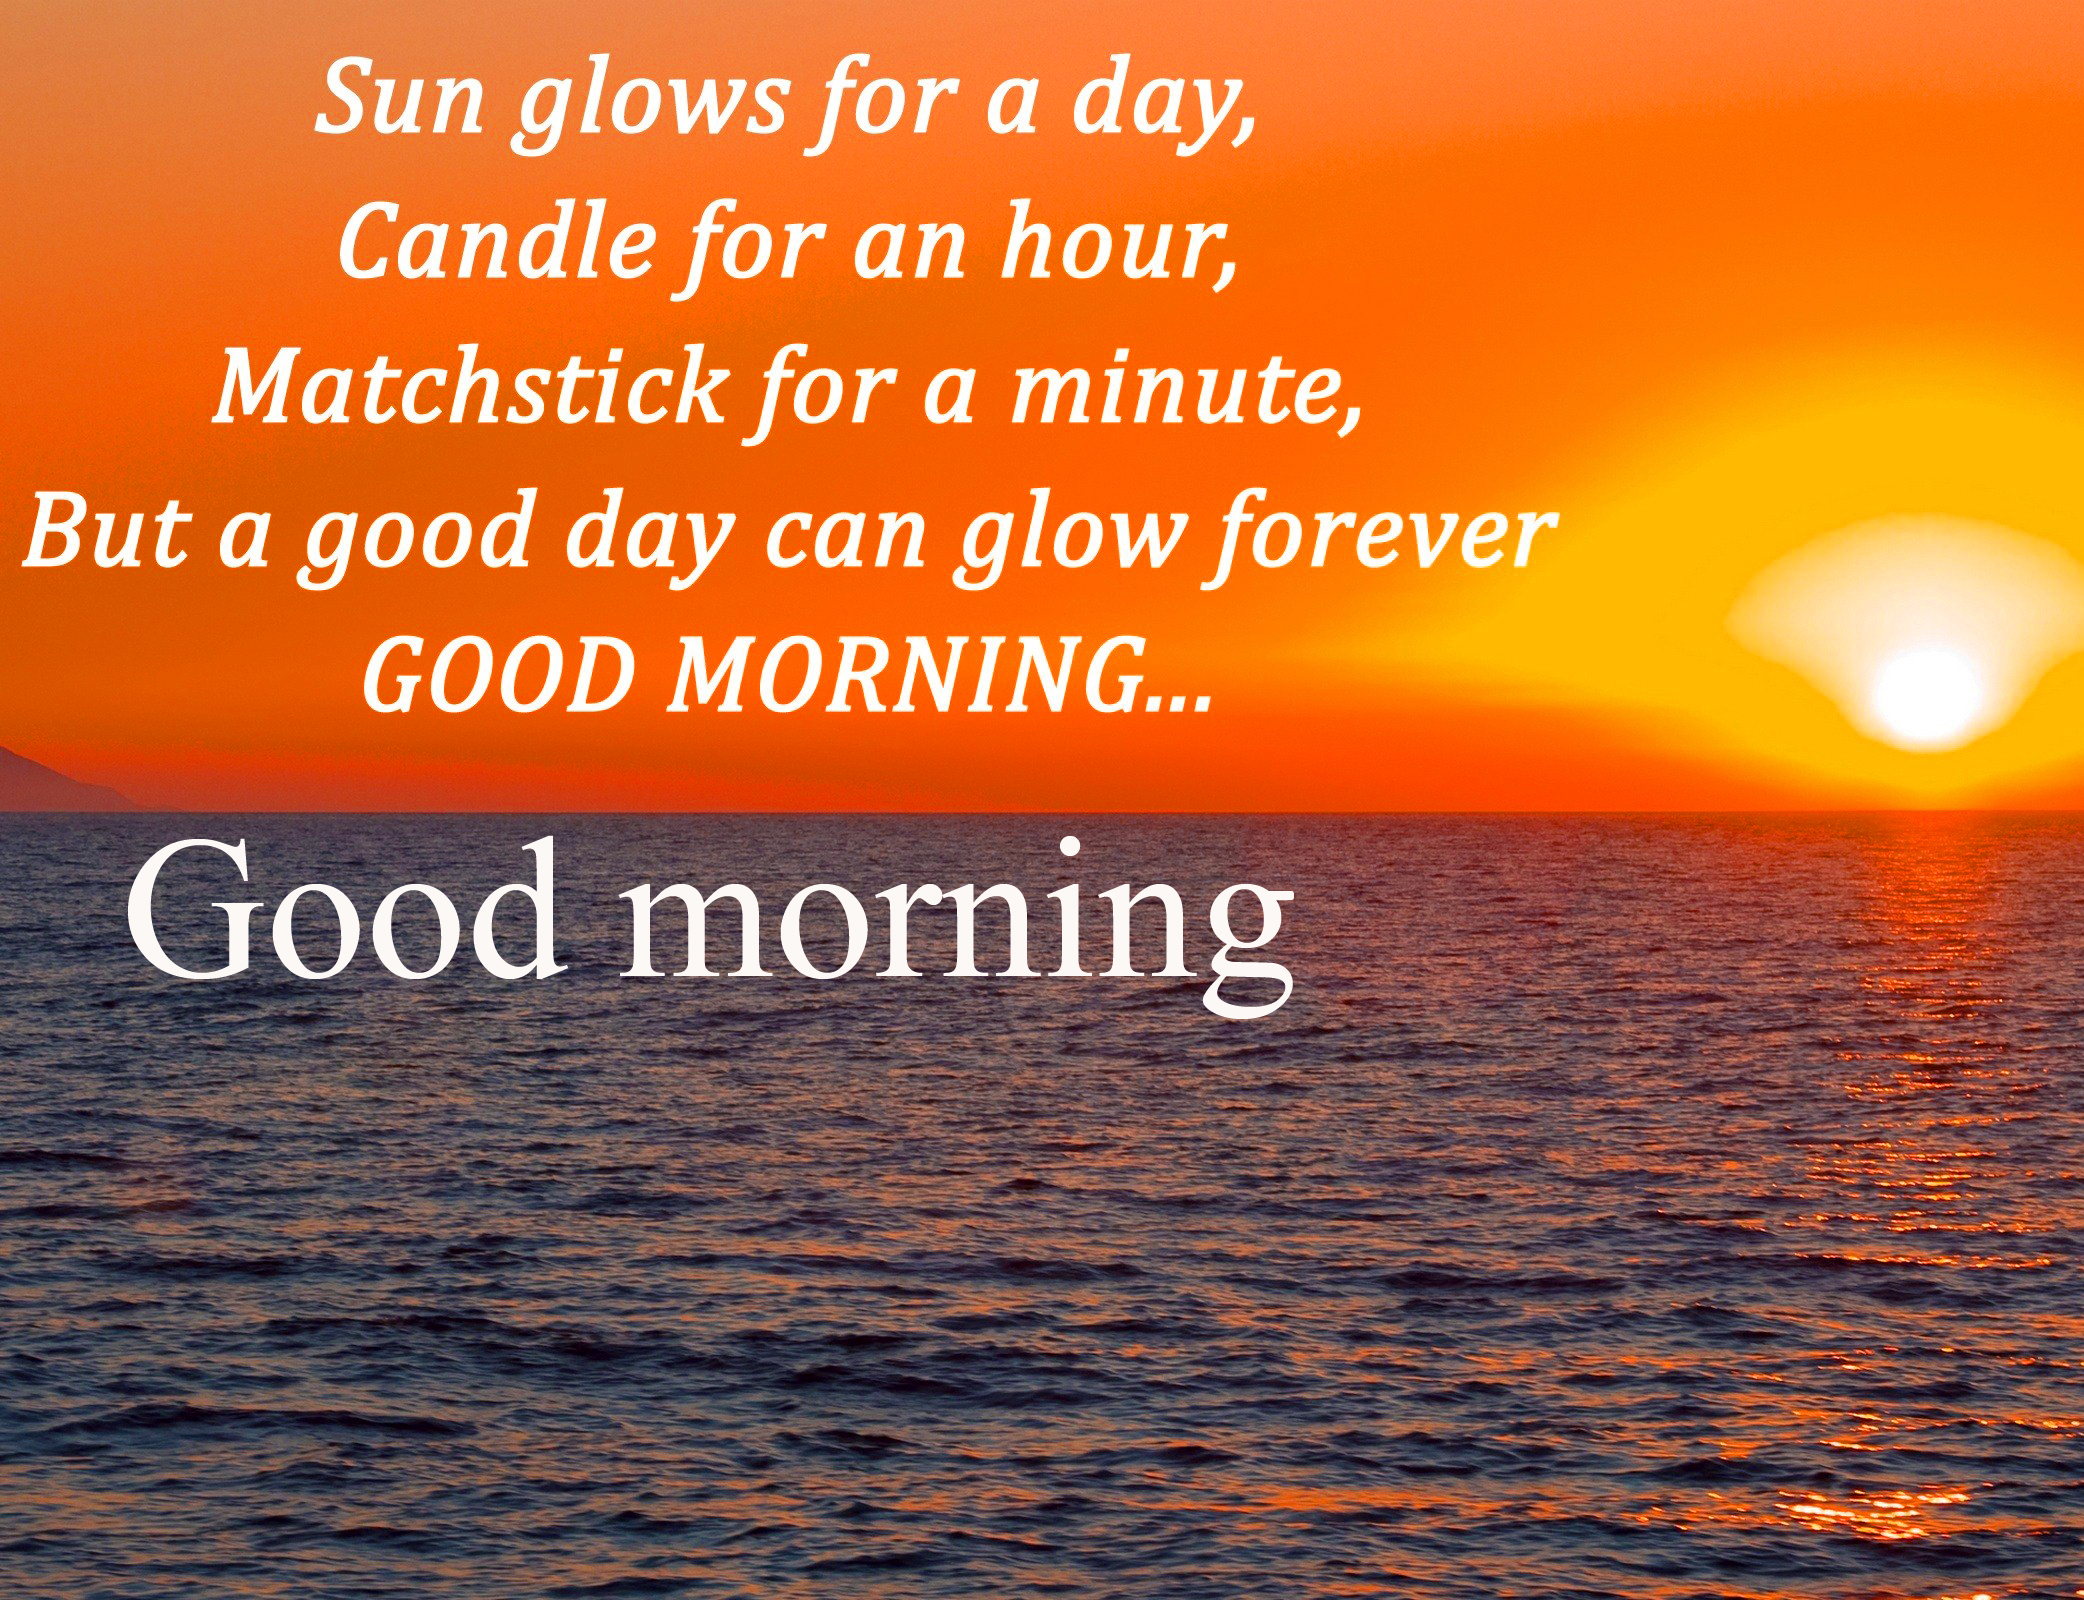 Good Morning My Sunshine Quotes Wallpaper Images Free HD Download